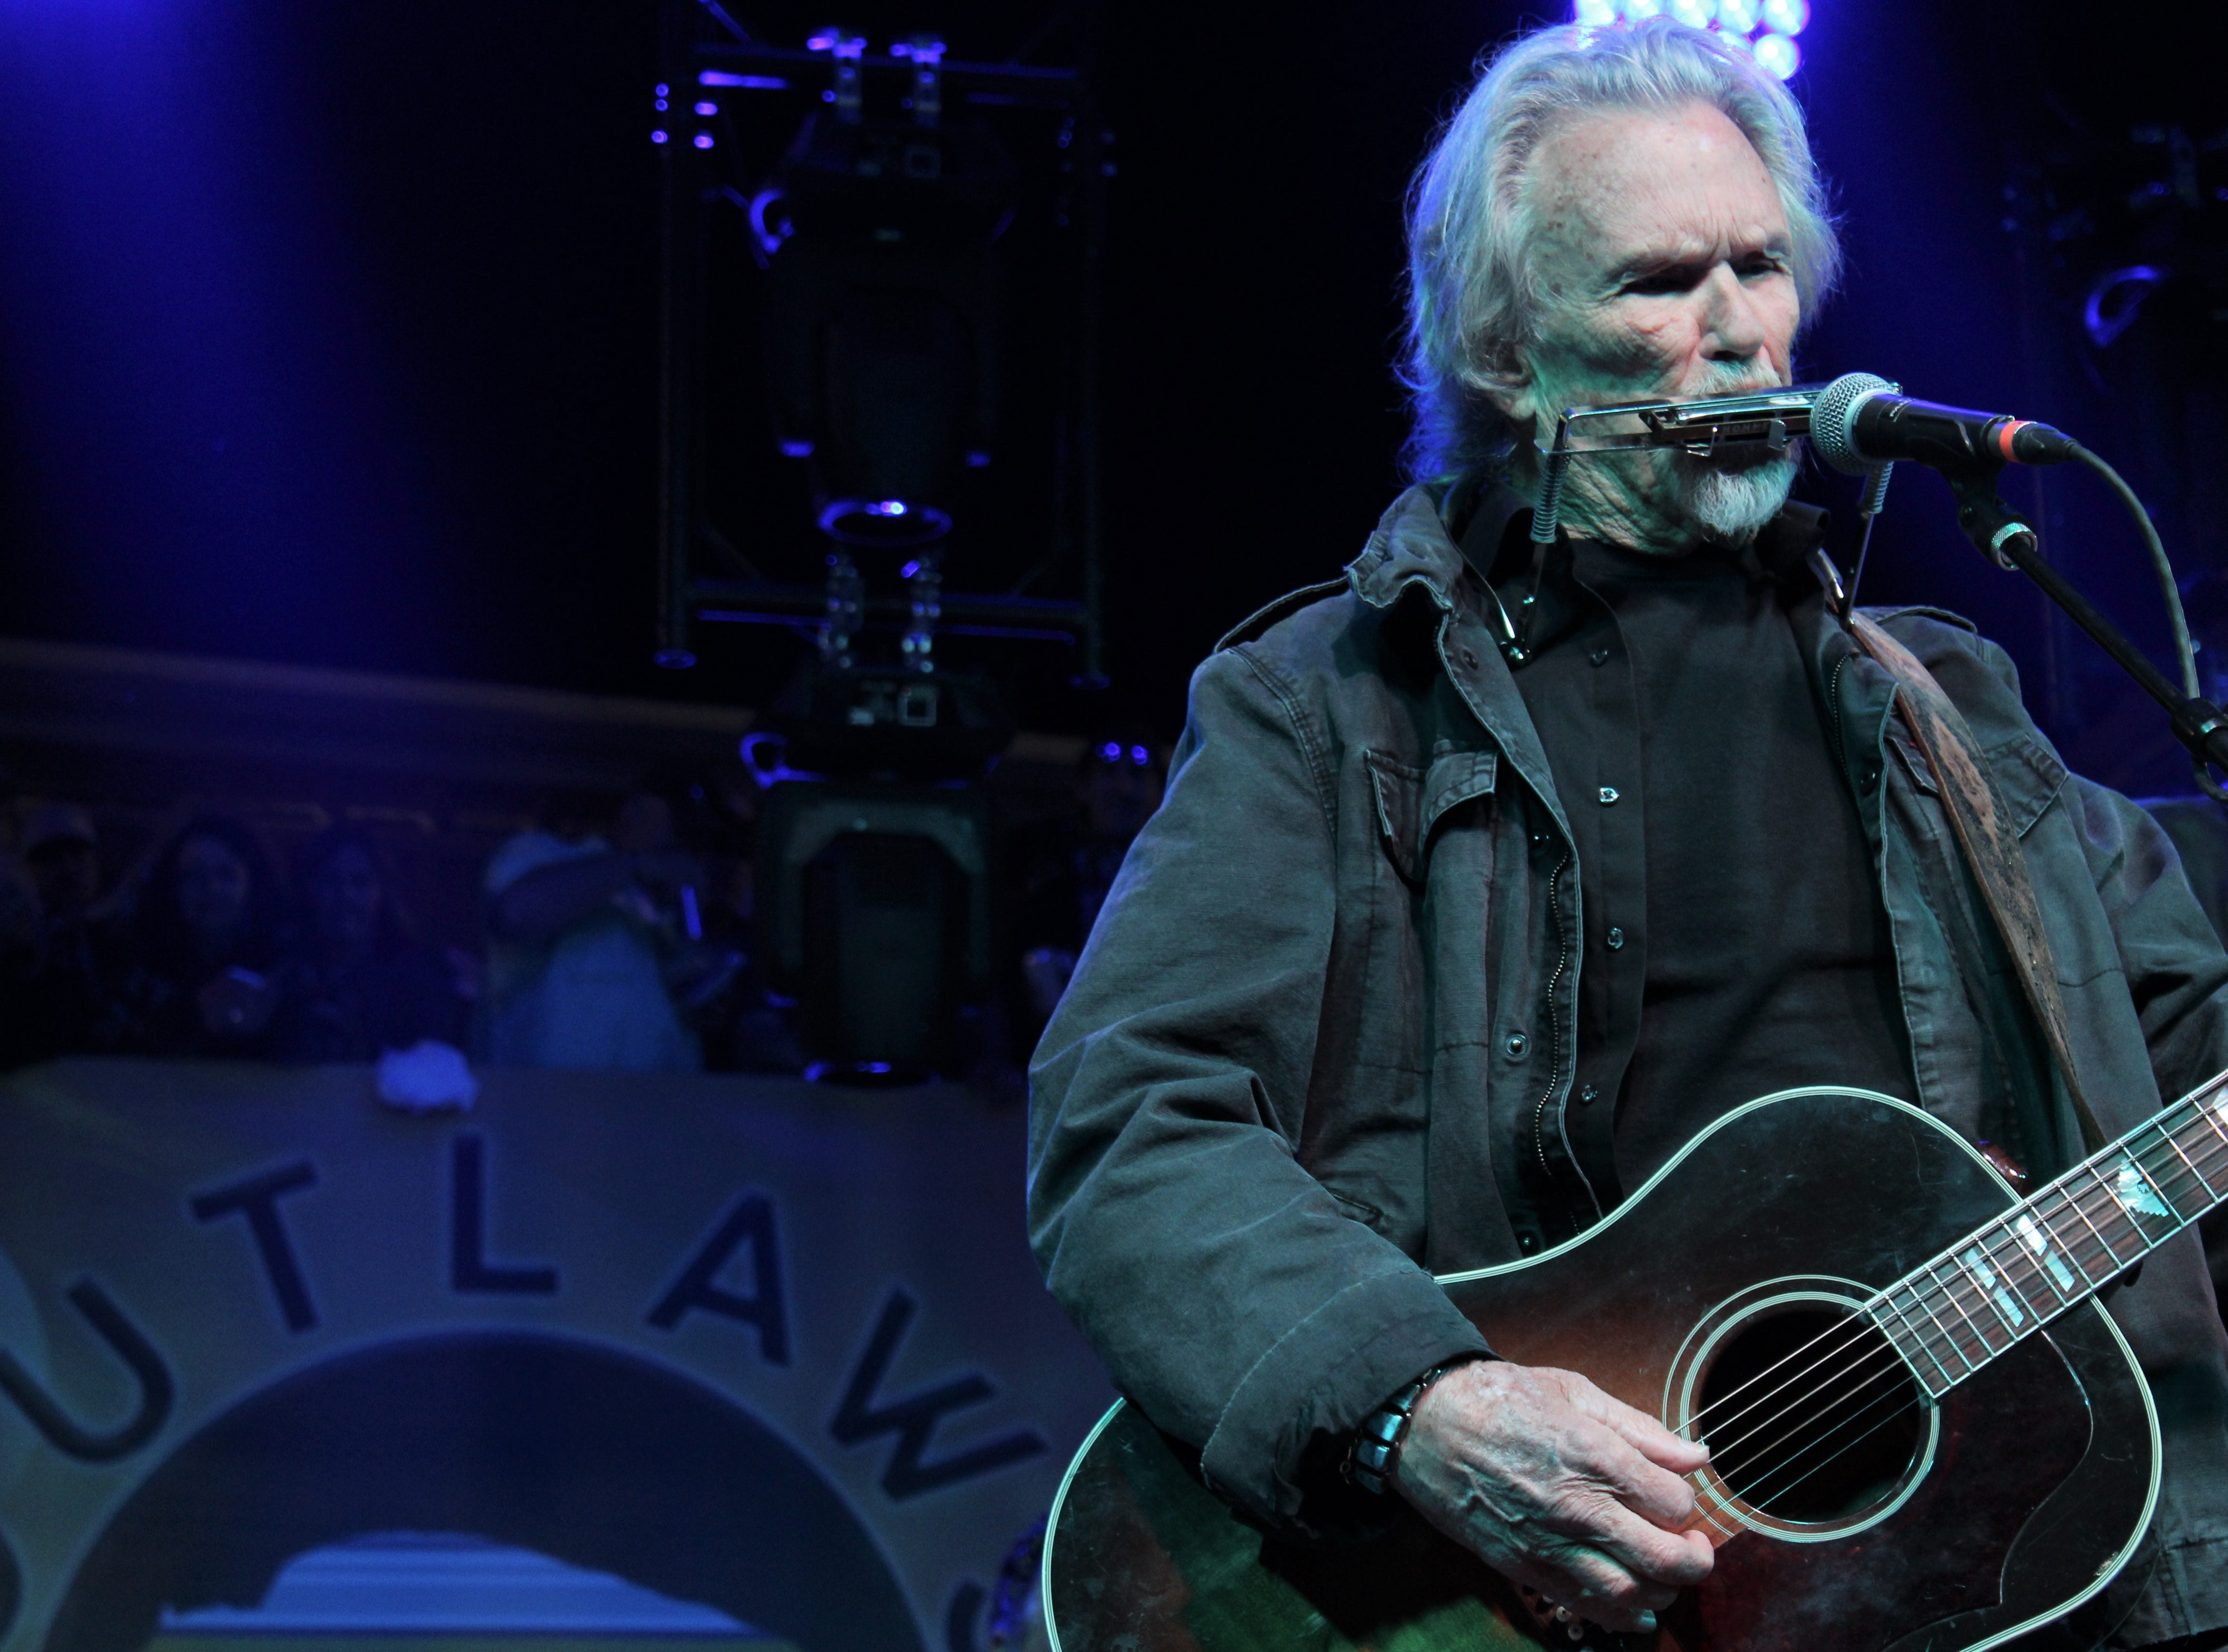 Kris Kristofferson plays the harmonica at Saturday's Outlaws & Legends Music Festival March 23, 2019.